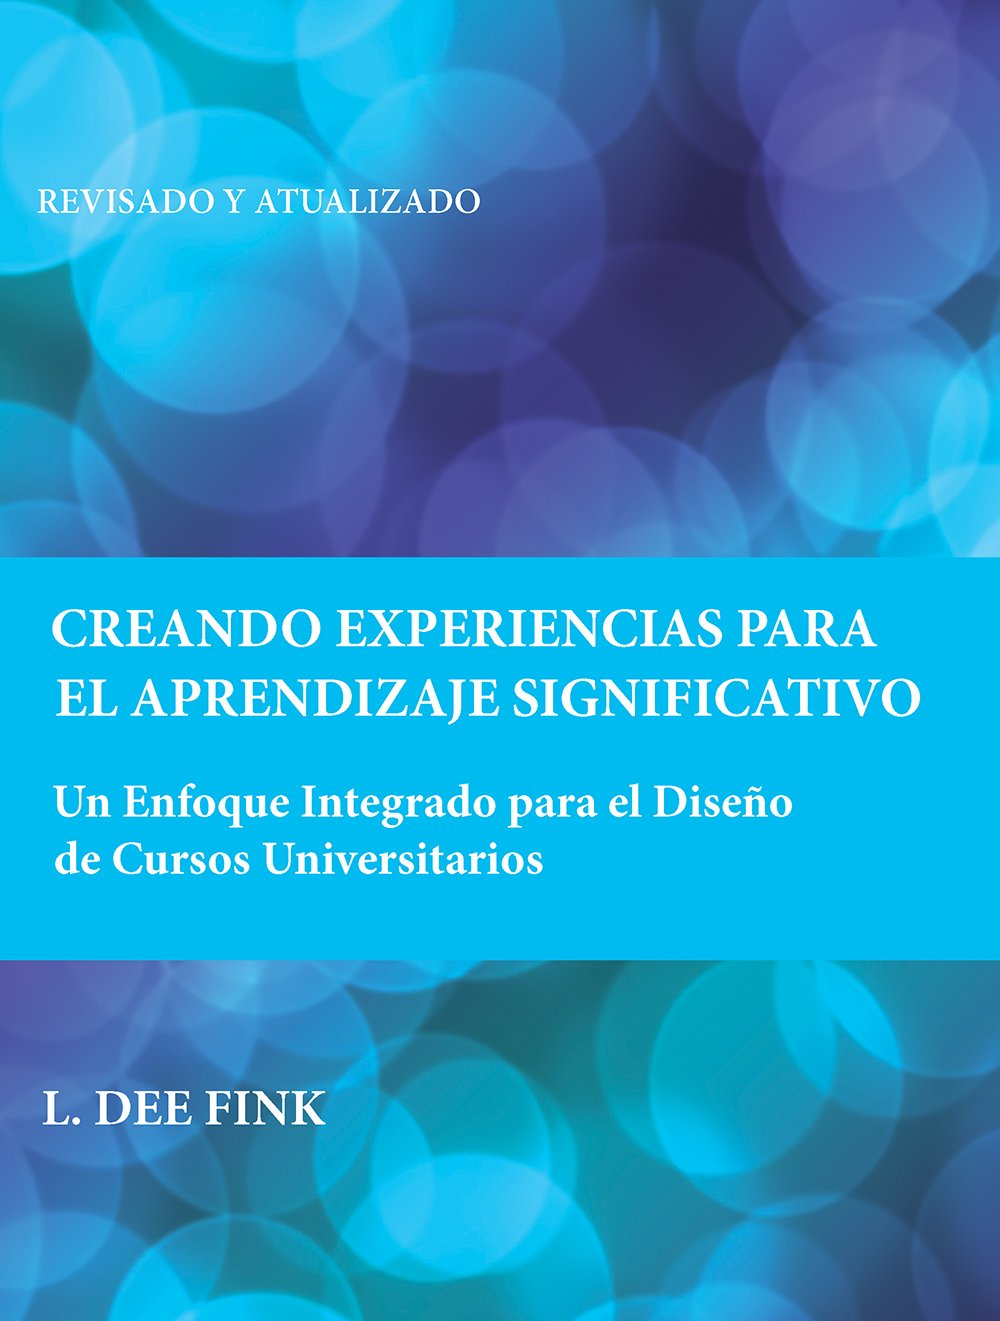 Download Creando Experiencias Para El Aprendizaje Significativo: Un Enfoque Integrado Para El Diseño De Cursos Universitarios 